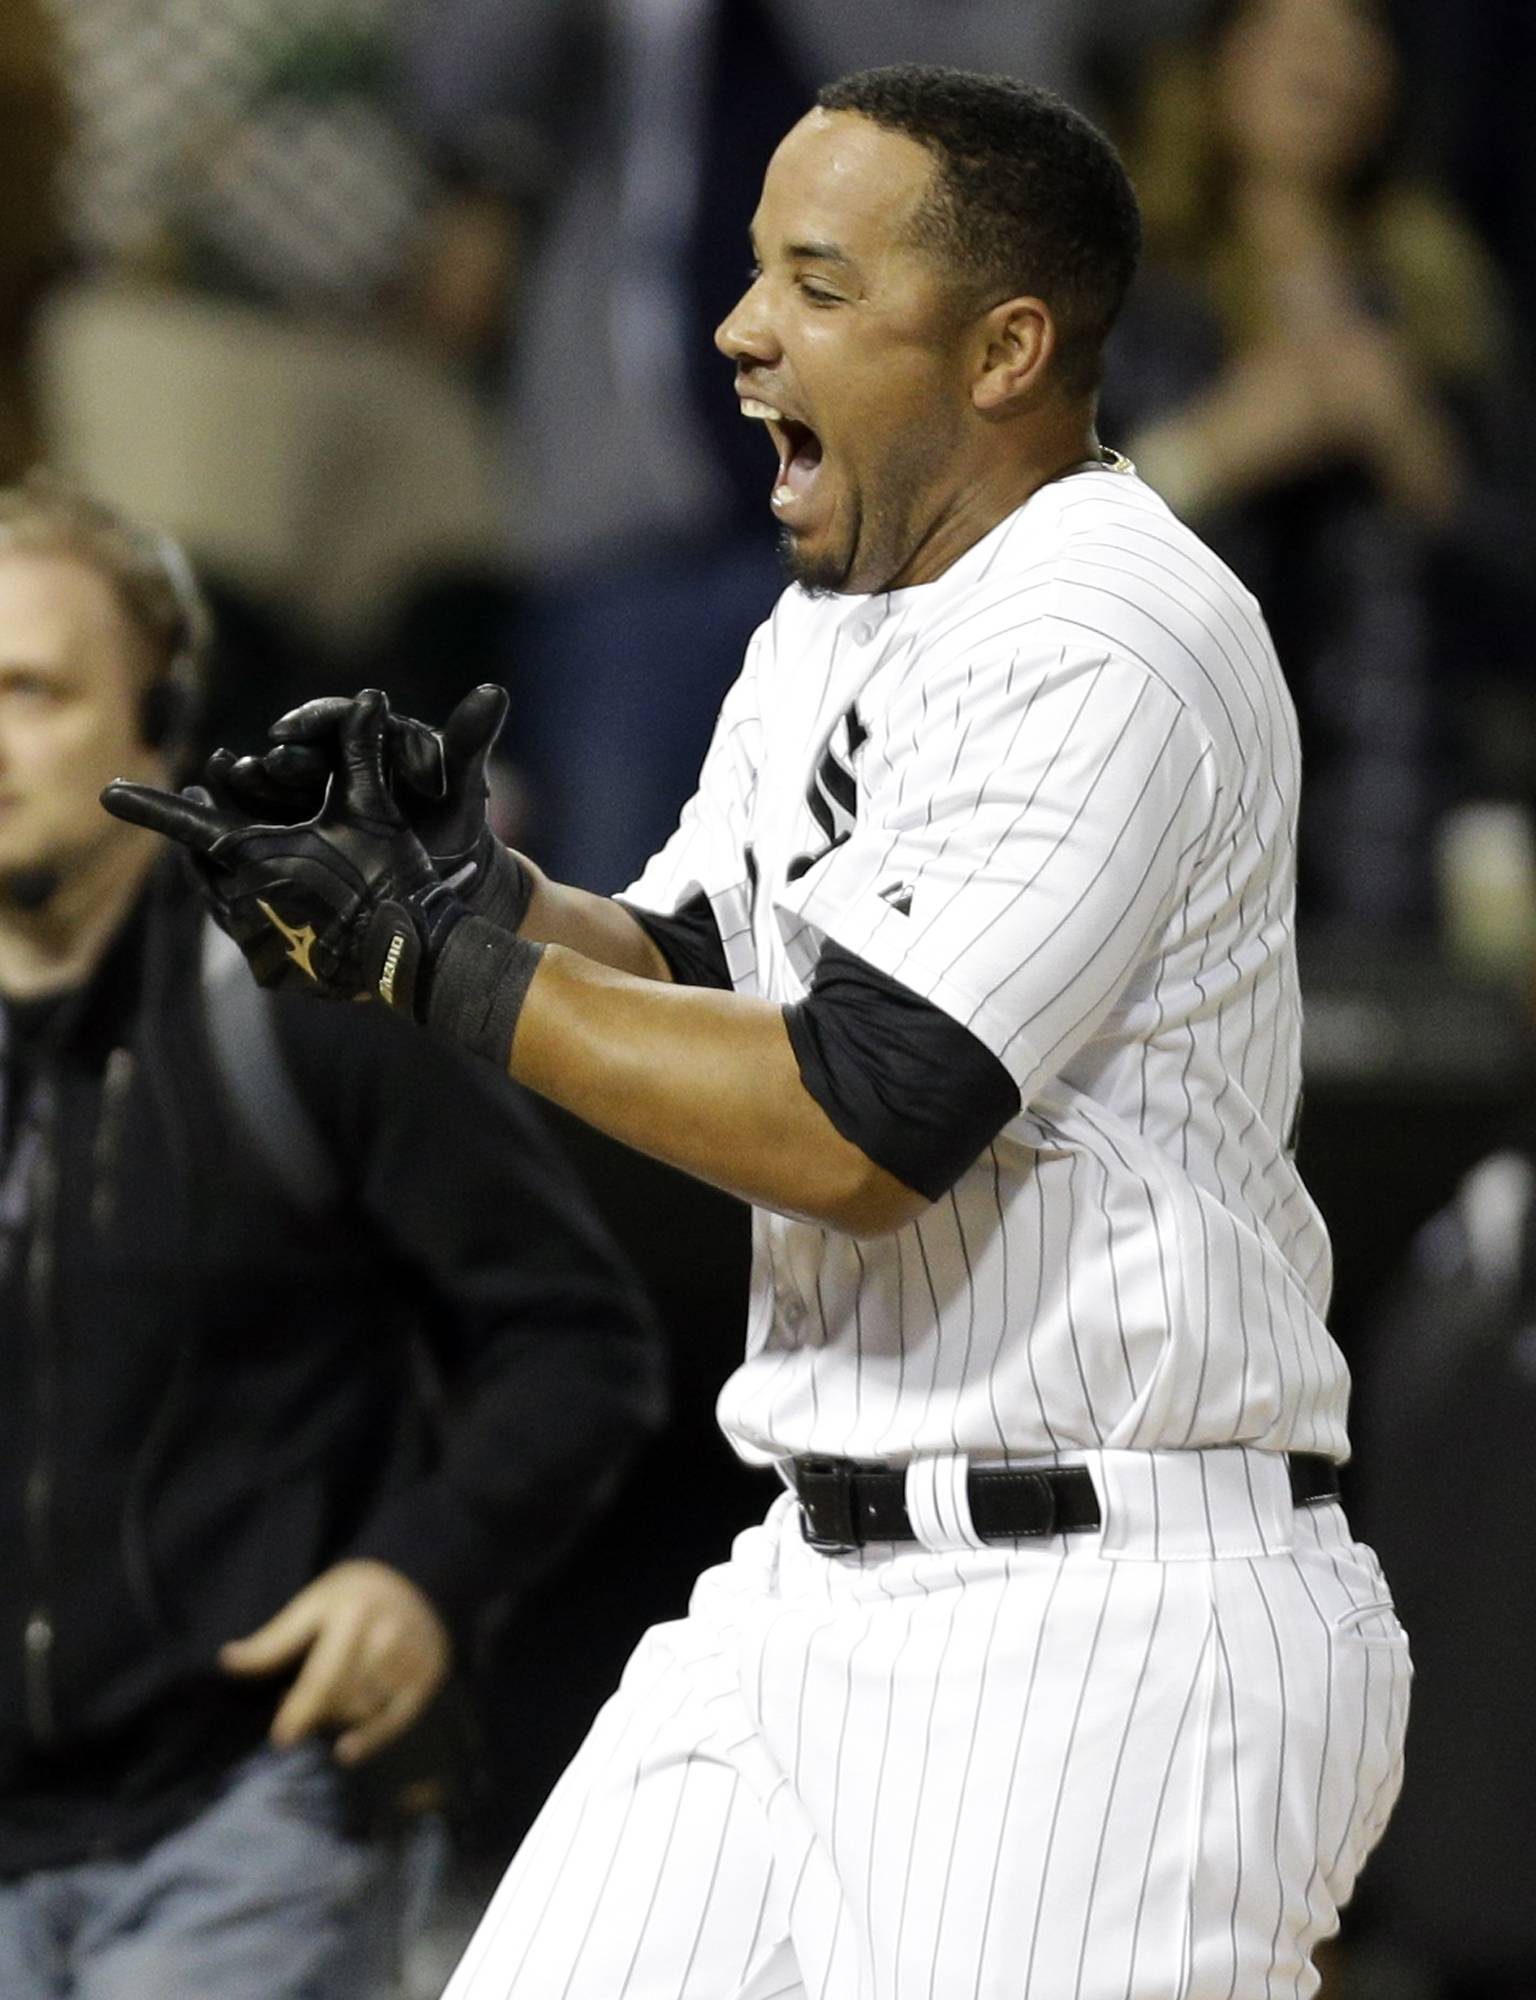 Jose Abreu celebrates as he rounds the bases after hitting a grand slam against the Tampa Bay Rays during the ninth inning of a baseball game on Friday, April 25, 2014.